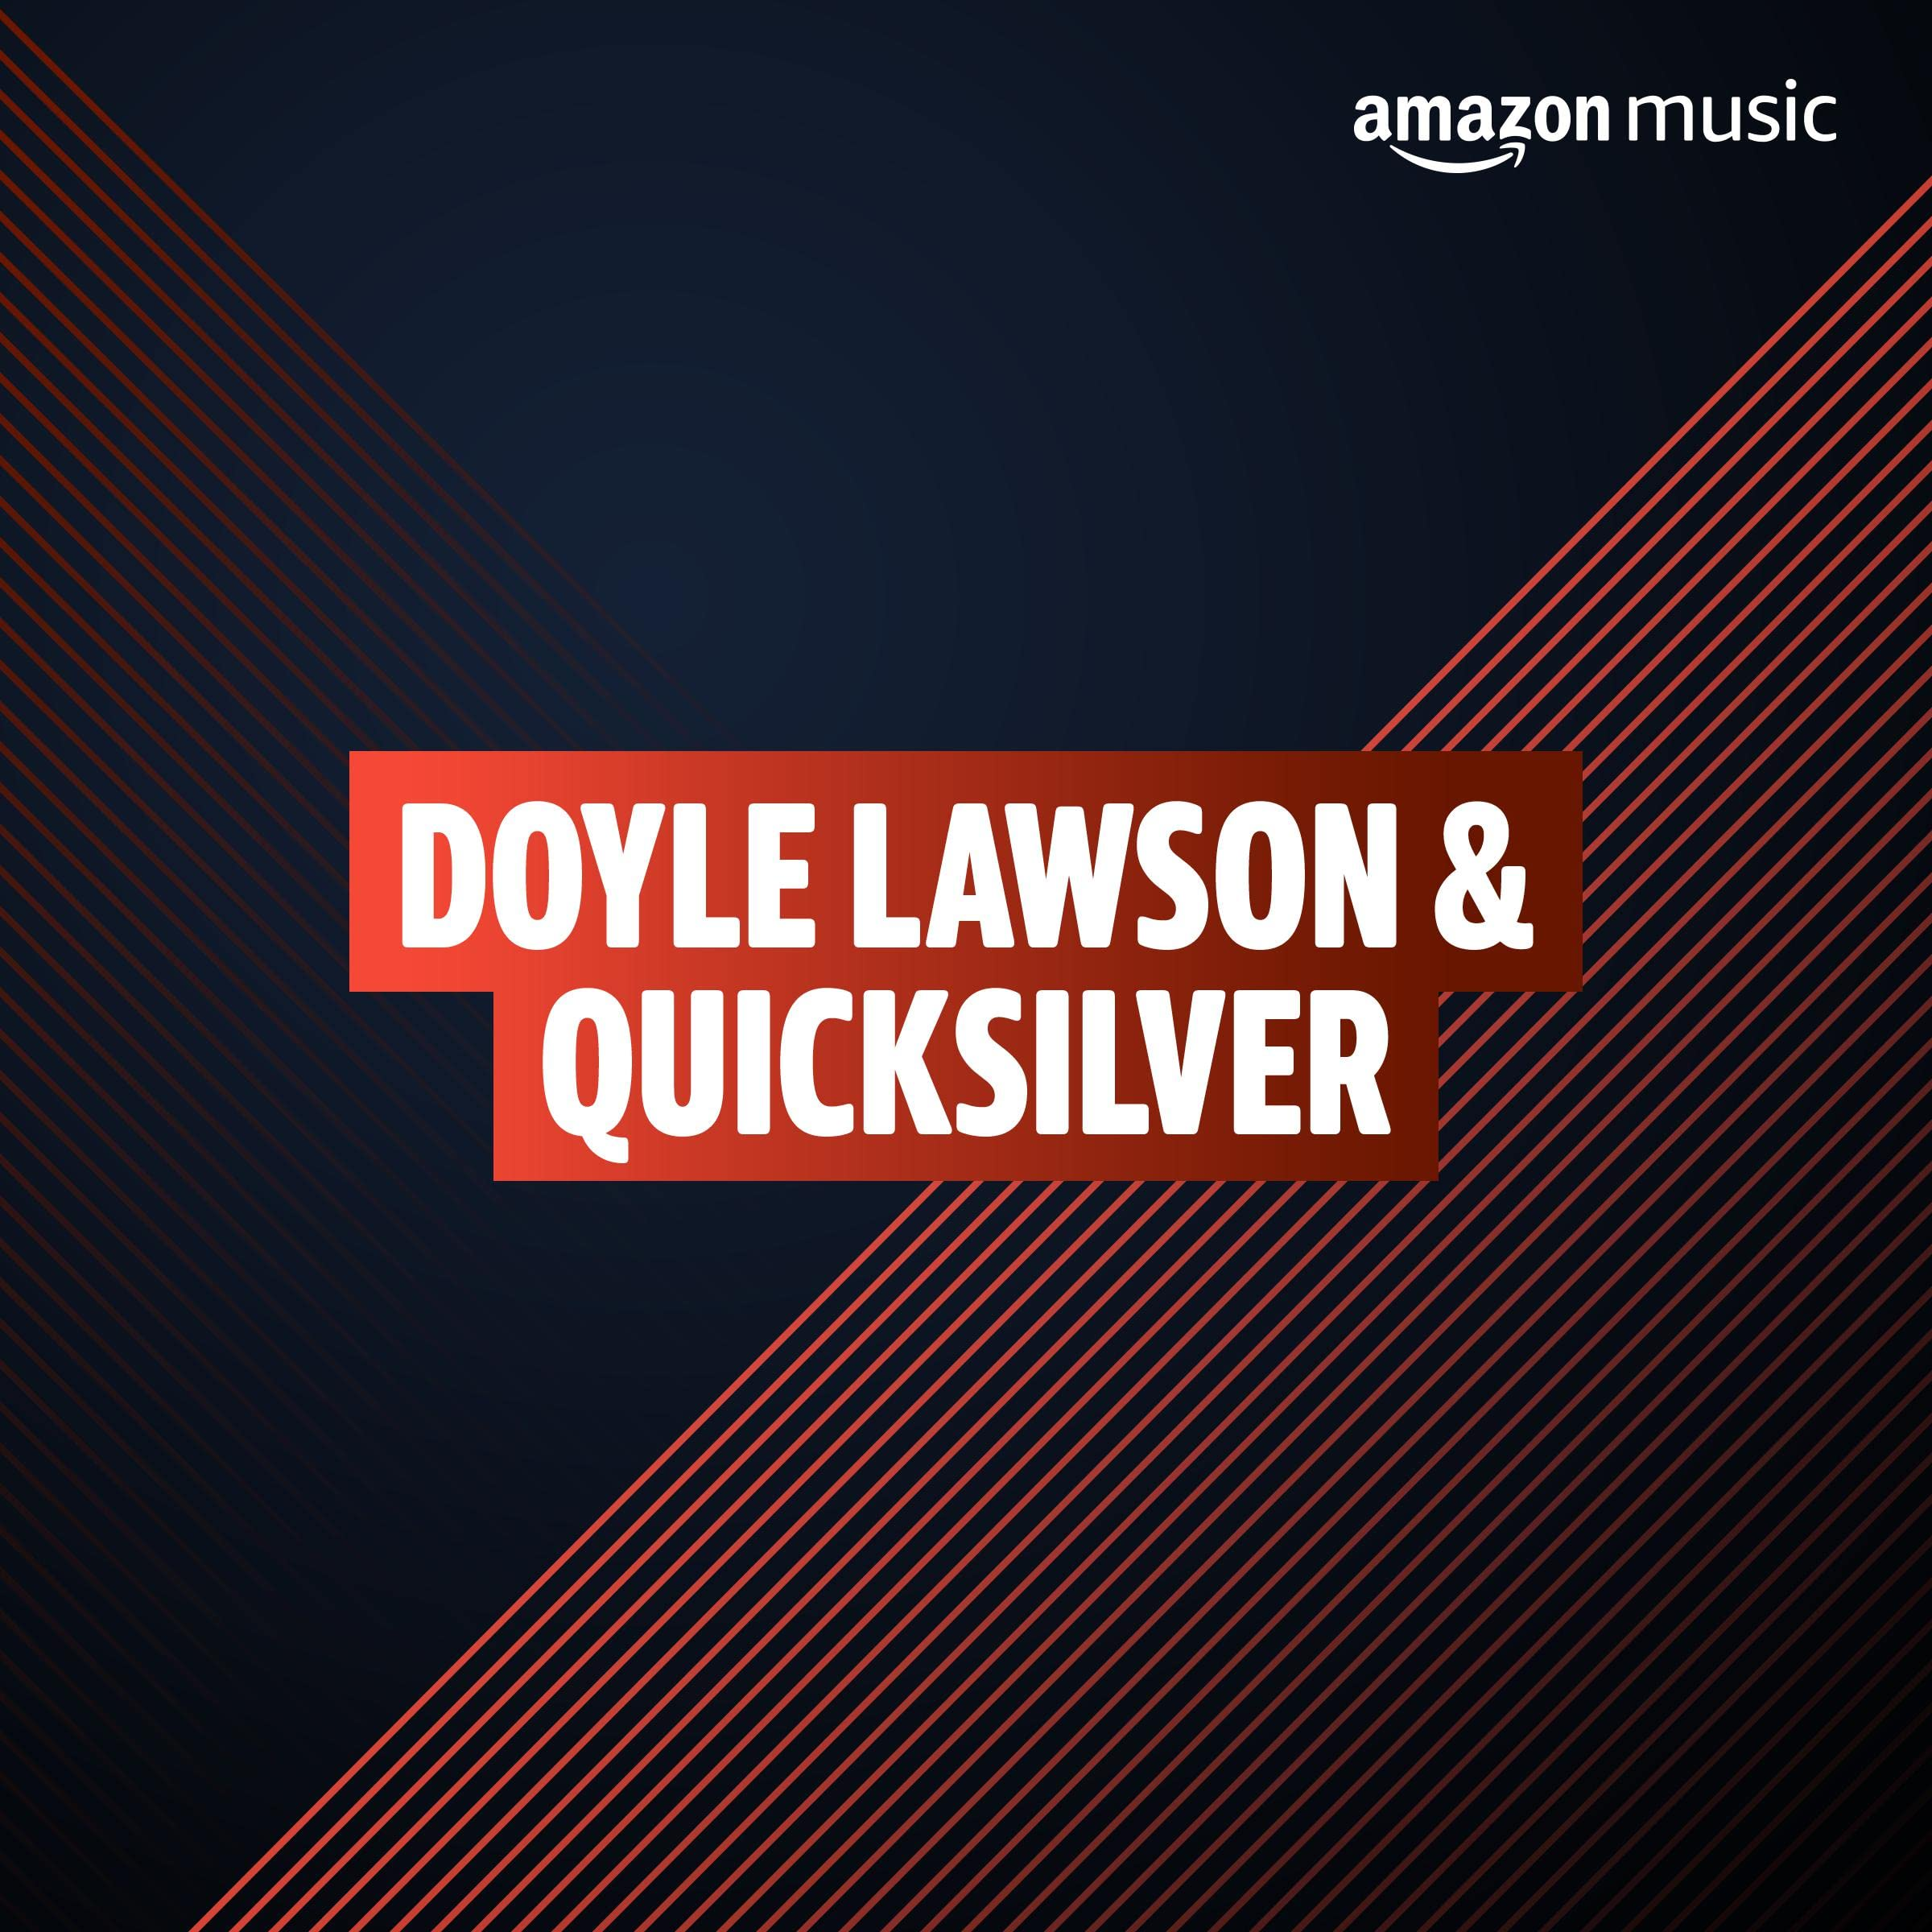 Doyle Lawson & Quicksilver